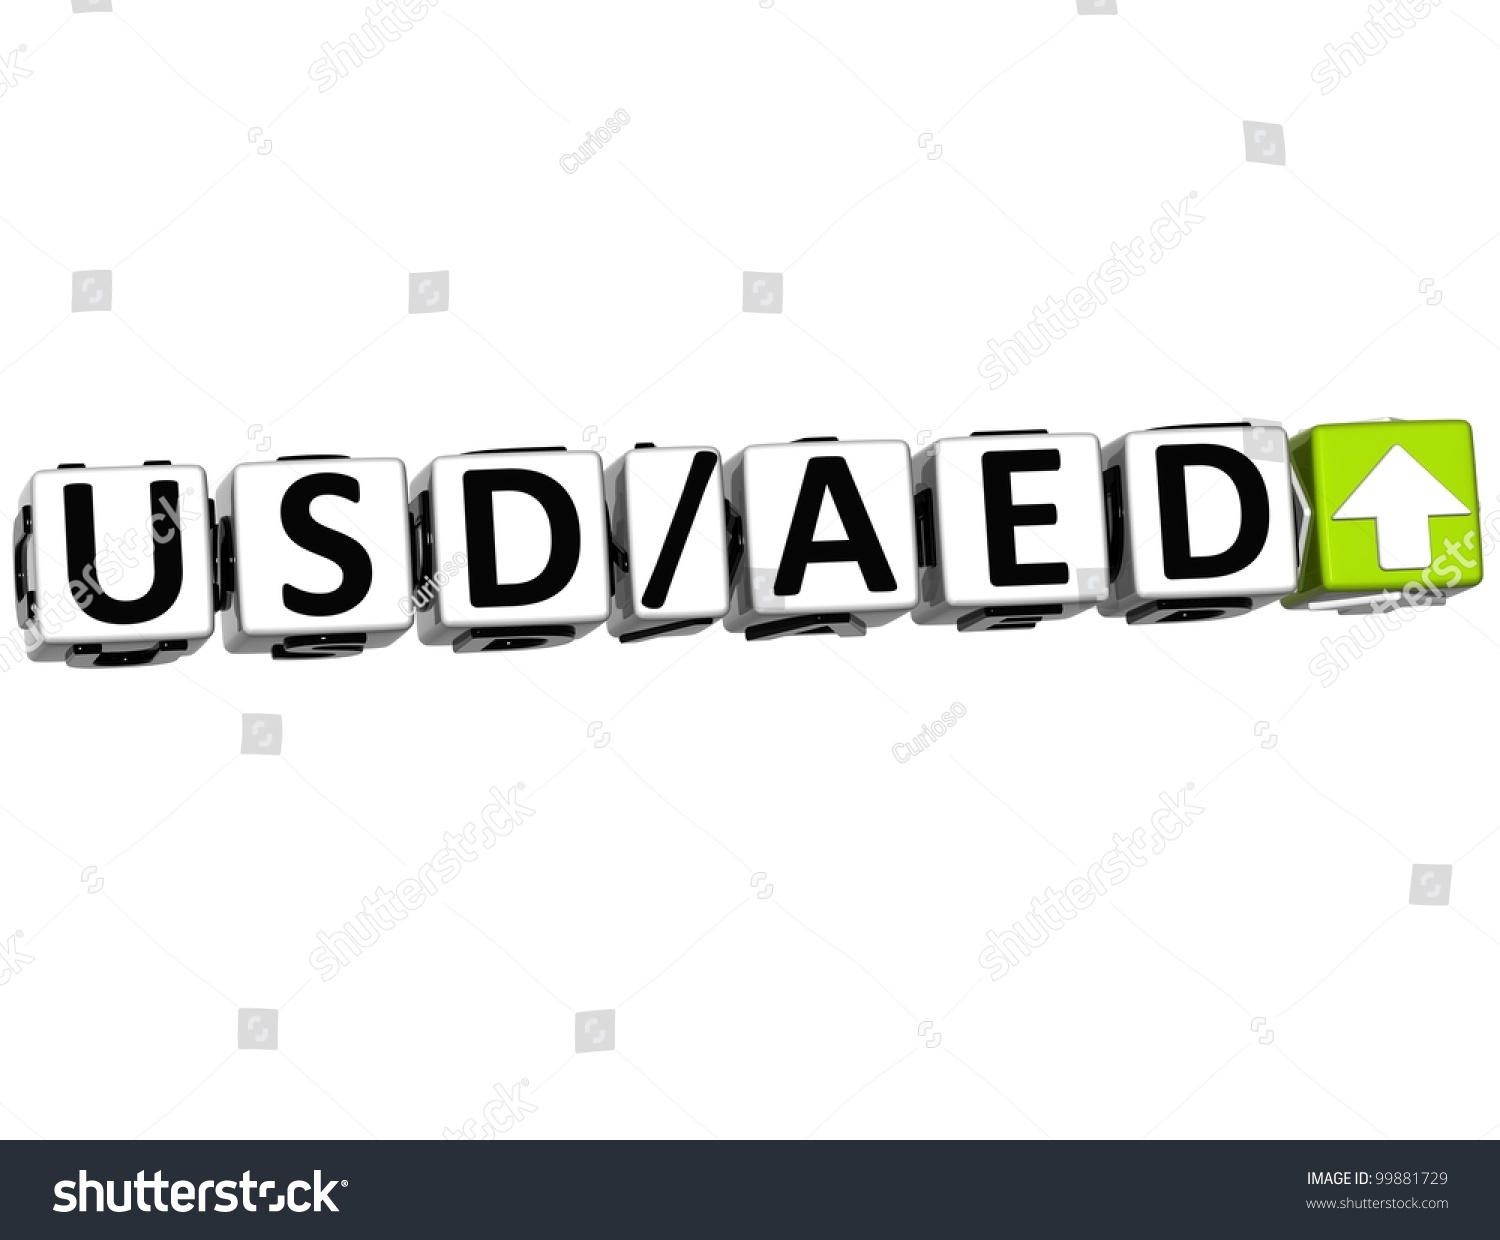 Currency symbol aed image collections symbols and meanings 3d currency usd aed rate concept stock illustration 99881729 3d currency usd aed rate concept symbol biocorpaavc Images